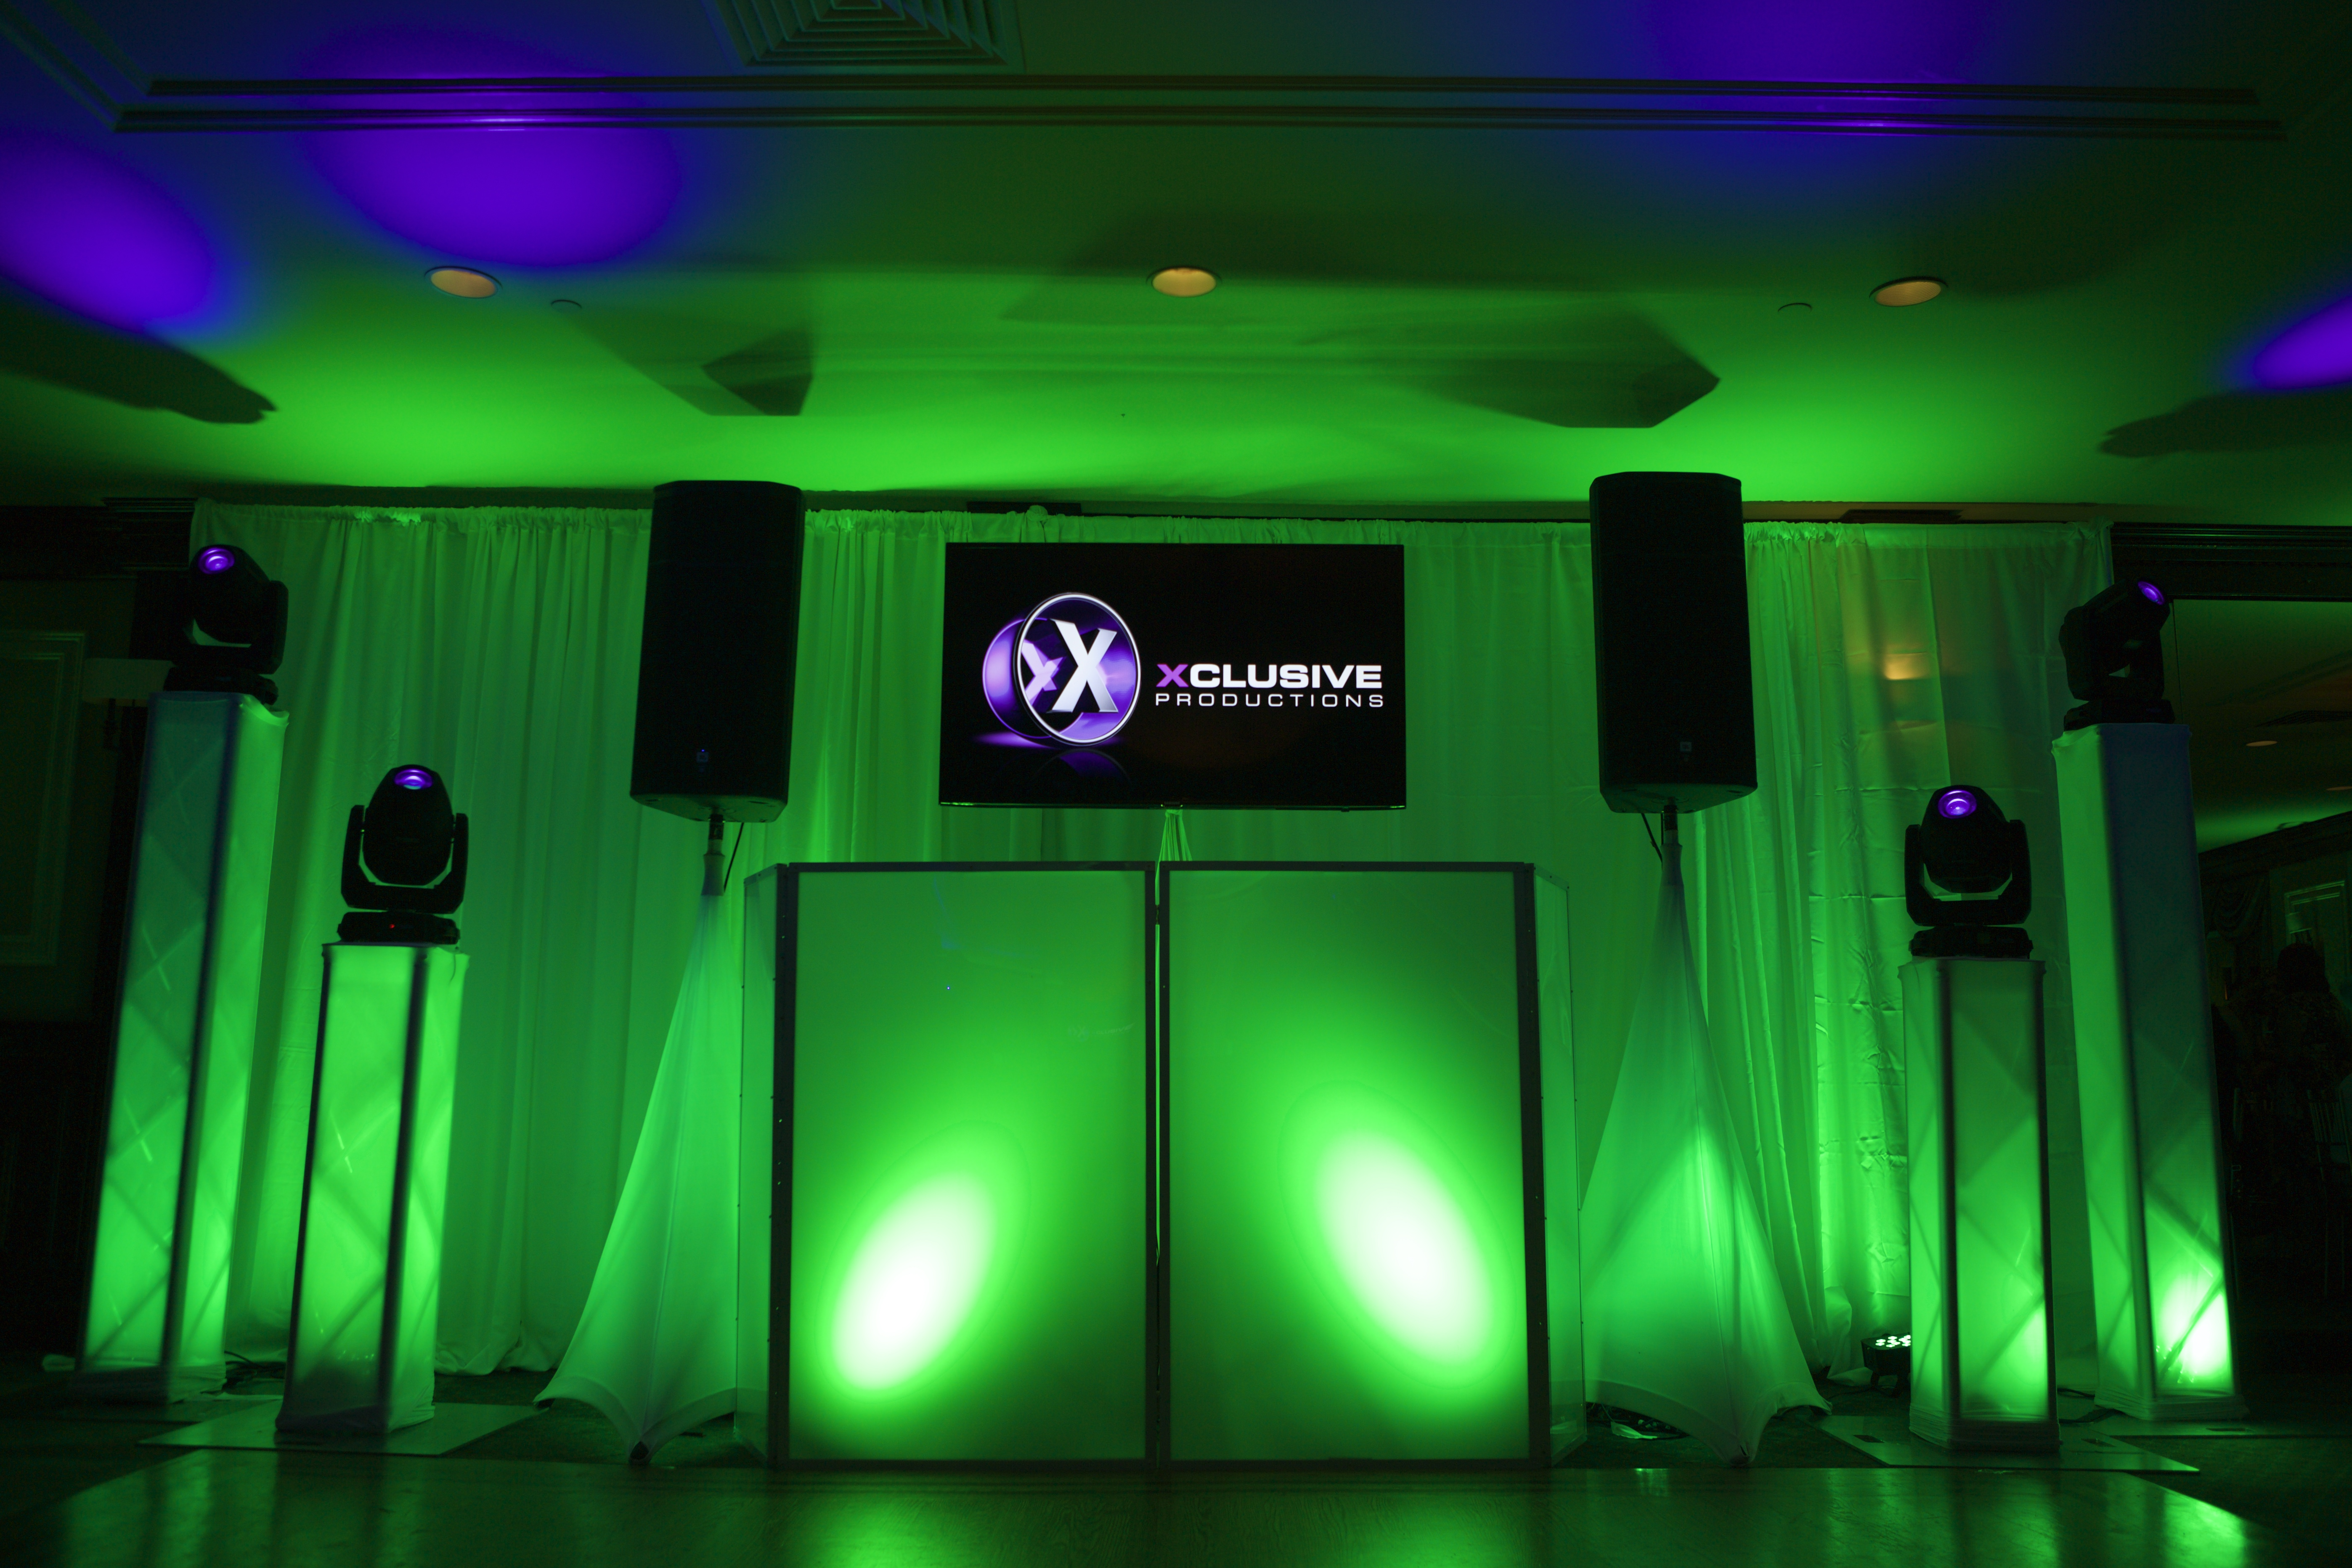 Wedding dj set up